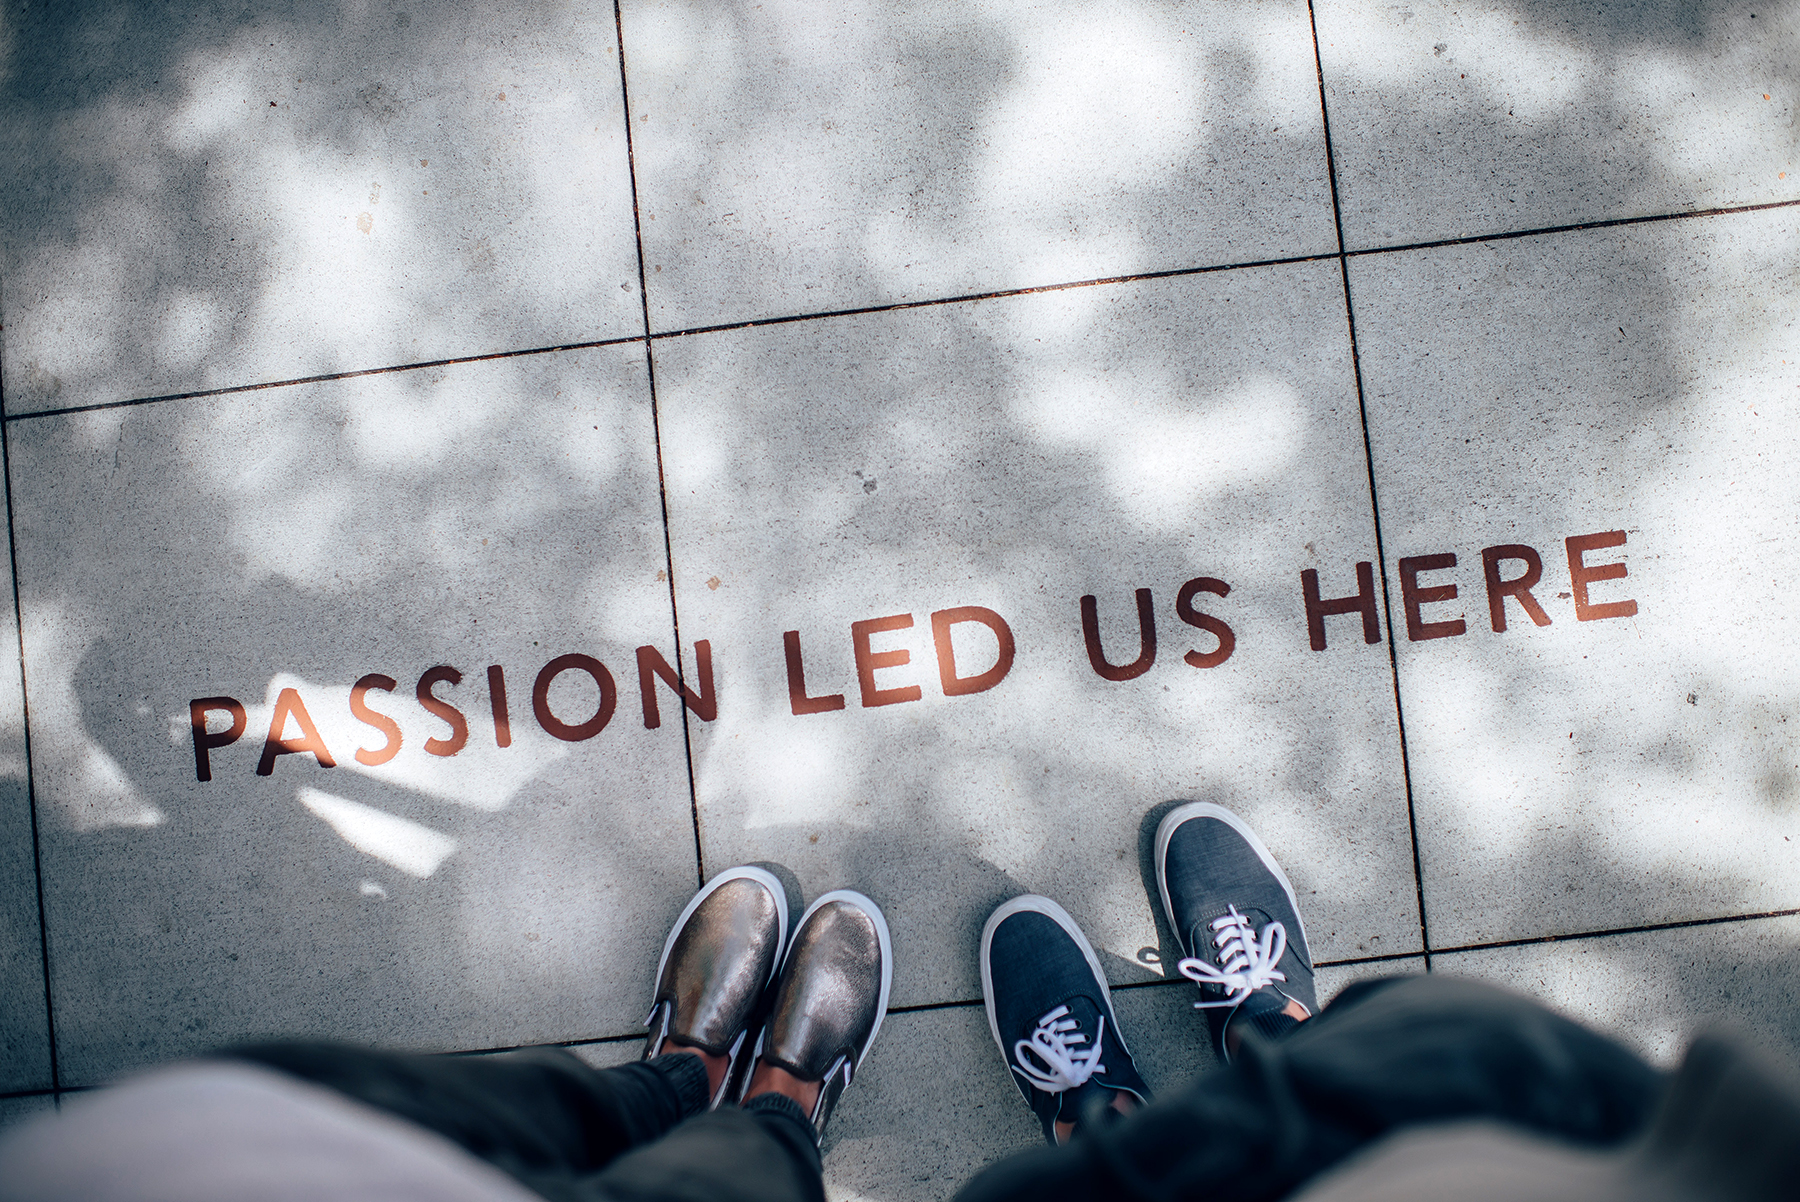 Passion led us here.